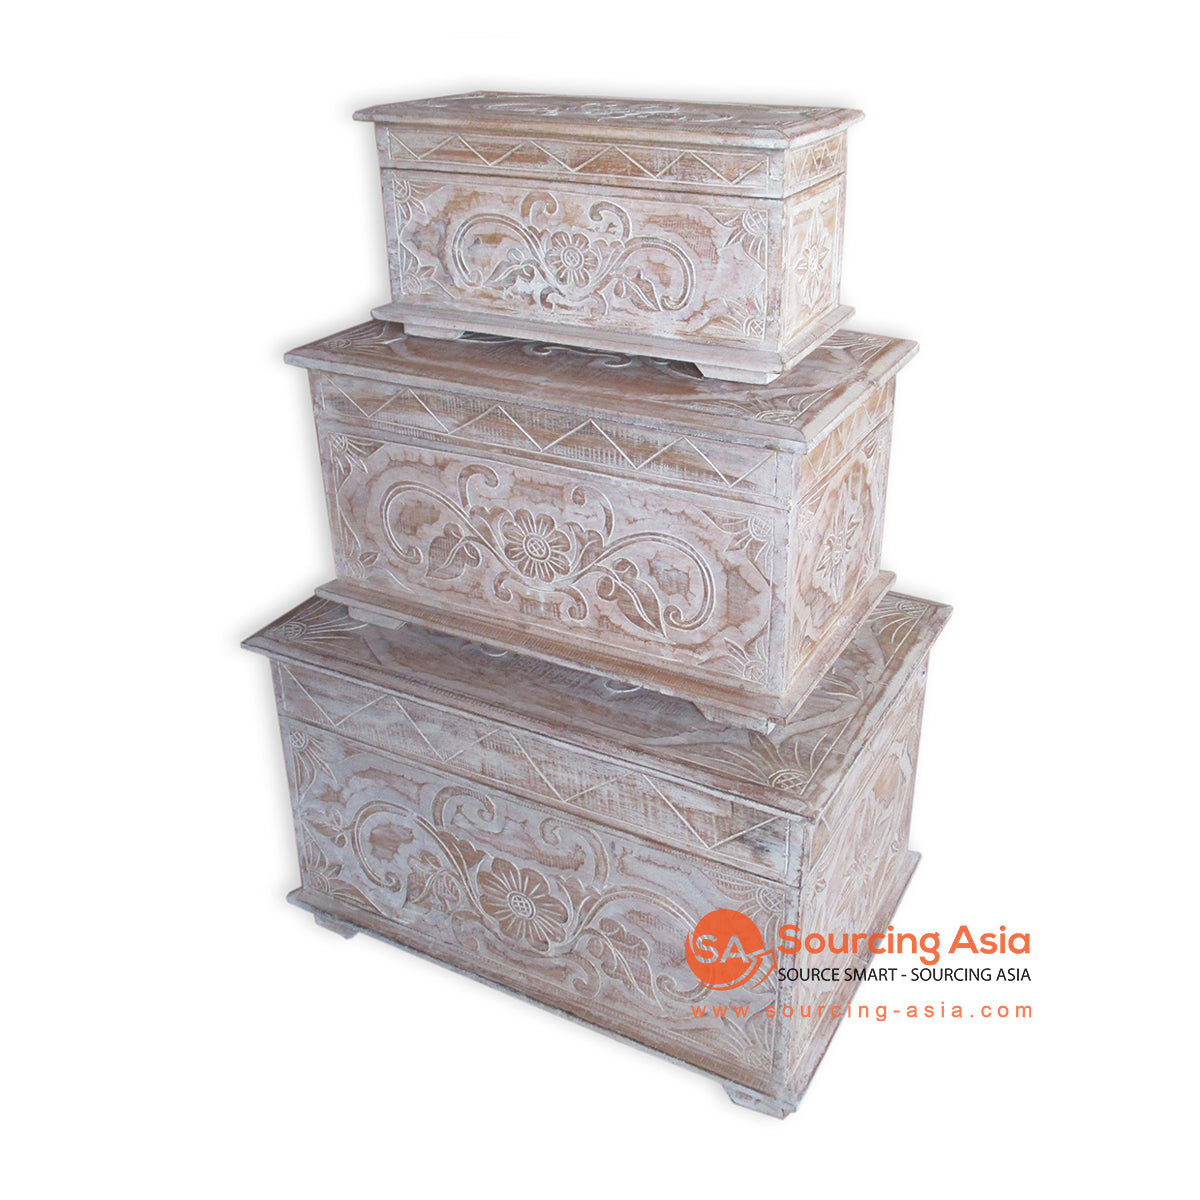 THE145BW SET OF 3 CARVED WOODEN BOXES